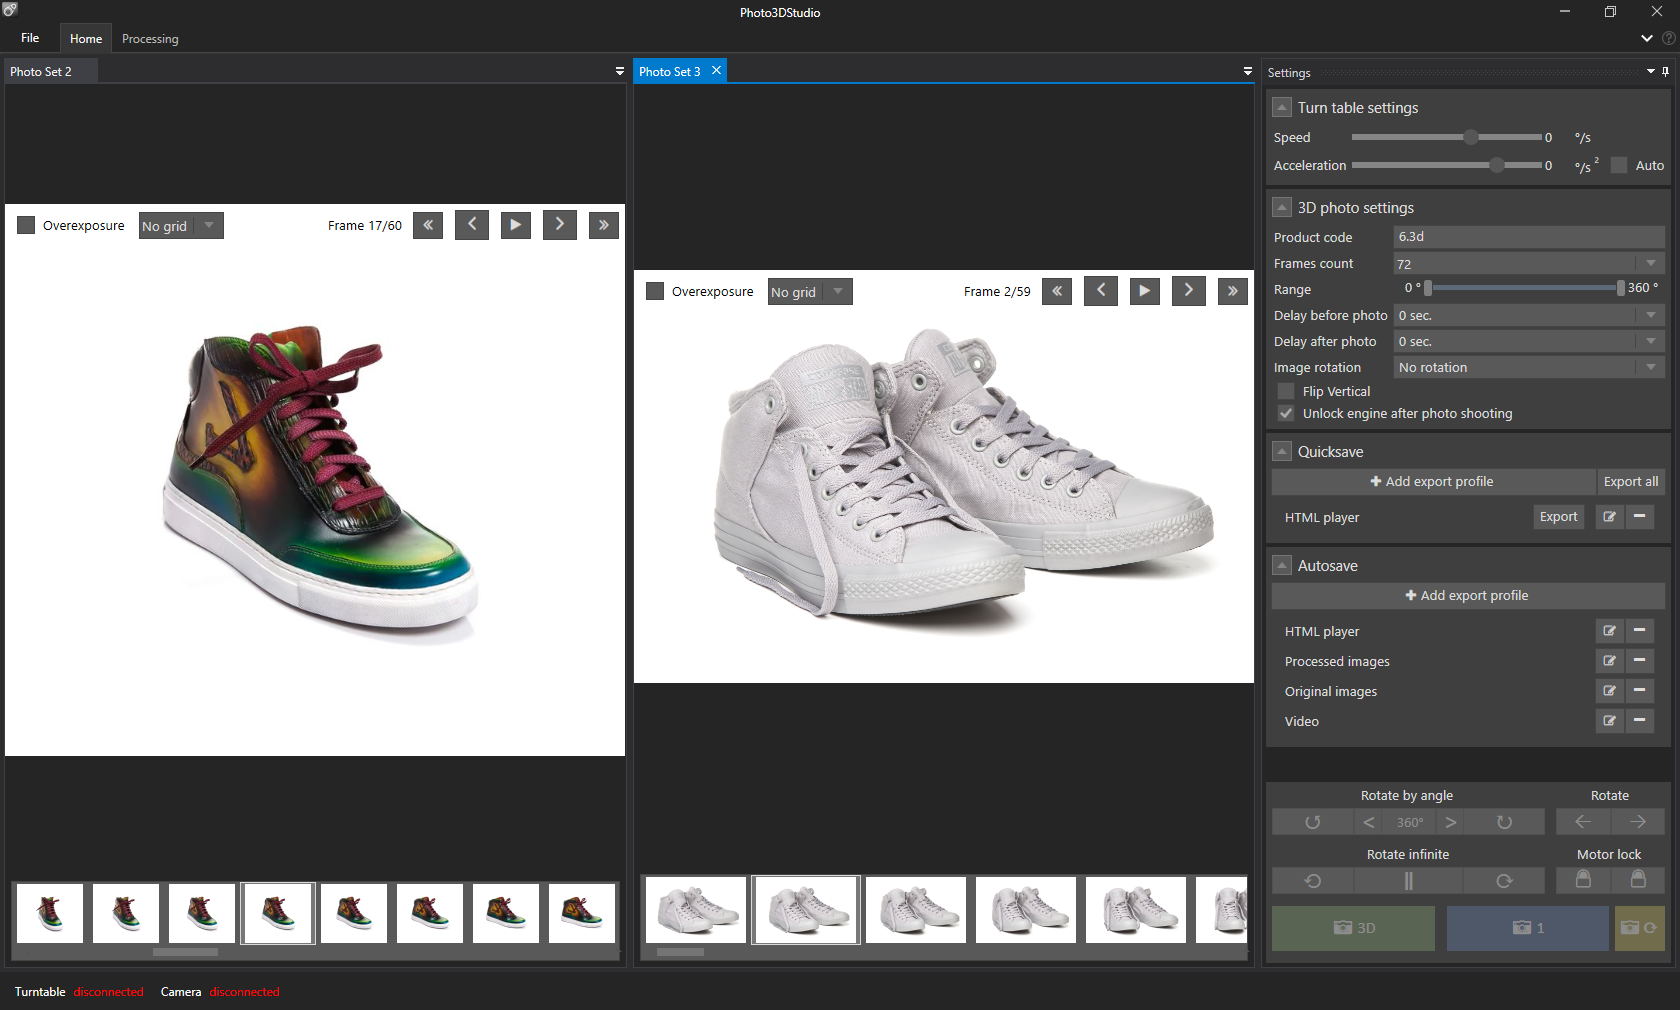 photo3dstudio-screenshot-software-for-product-photo